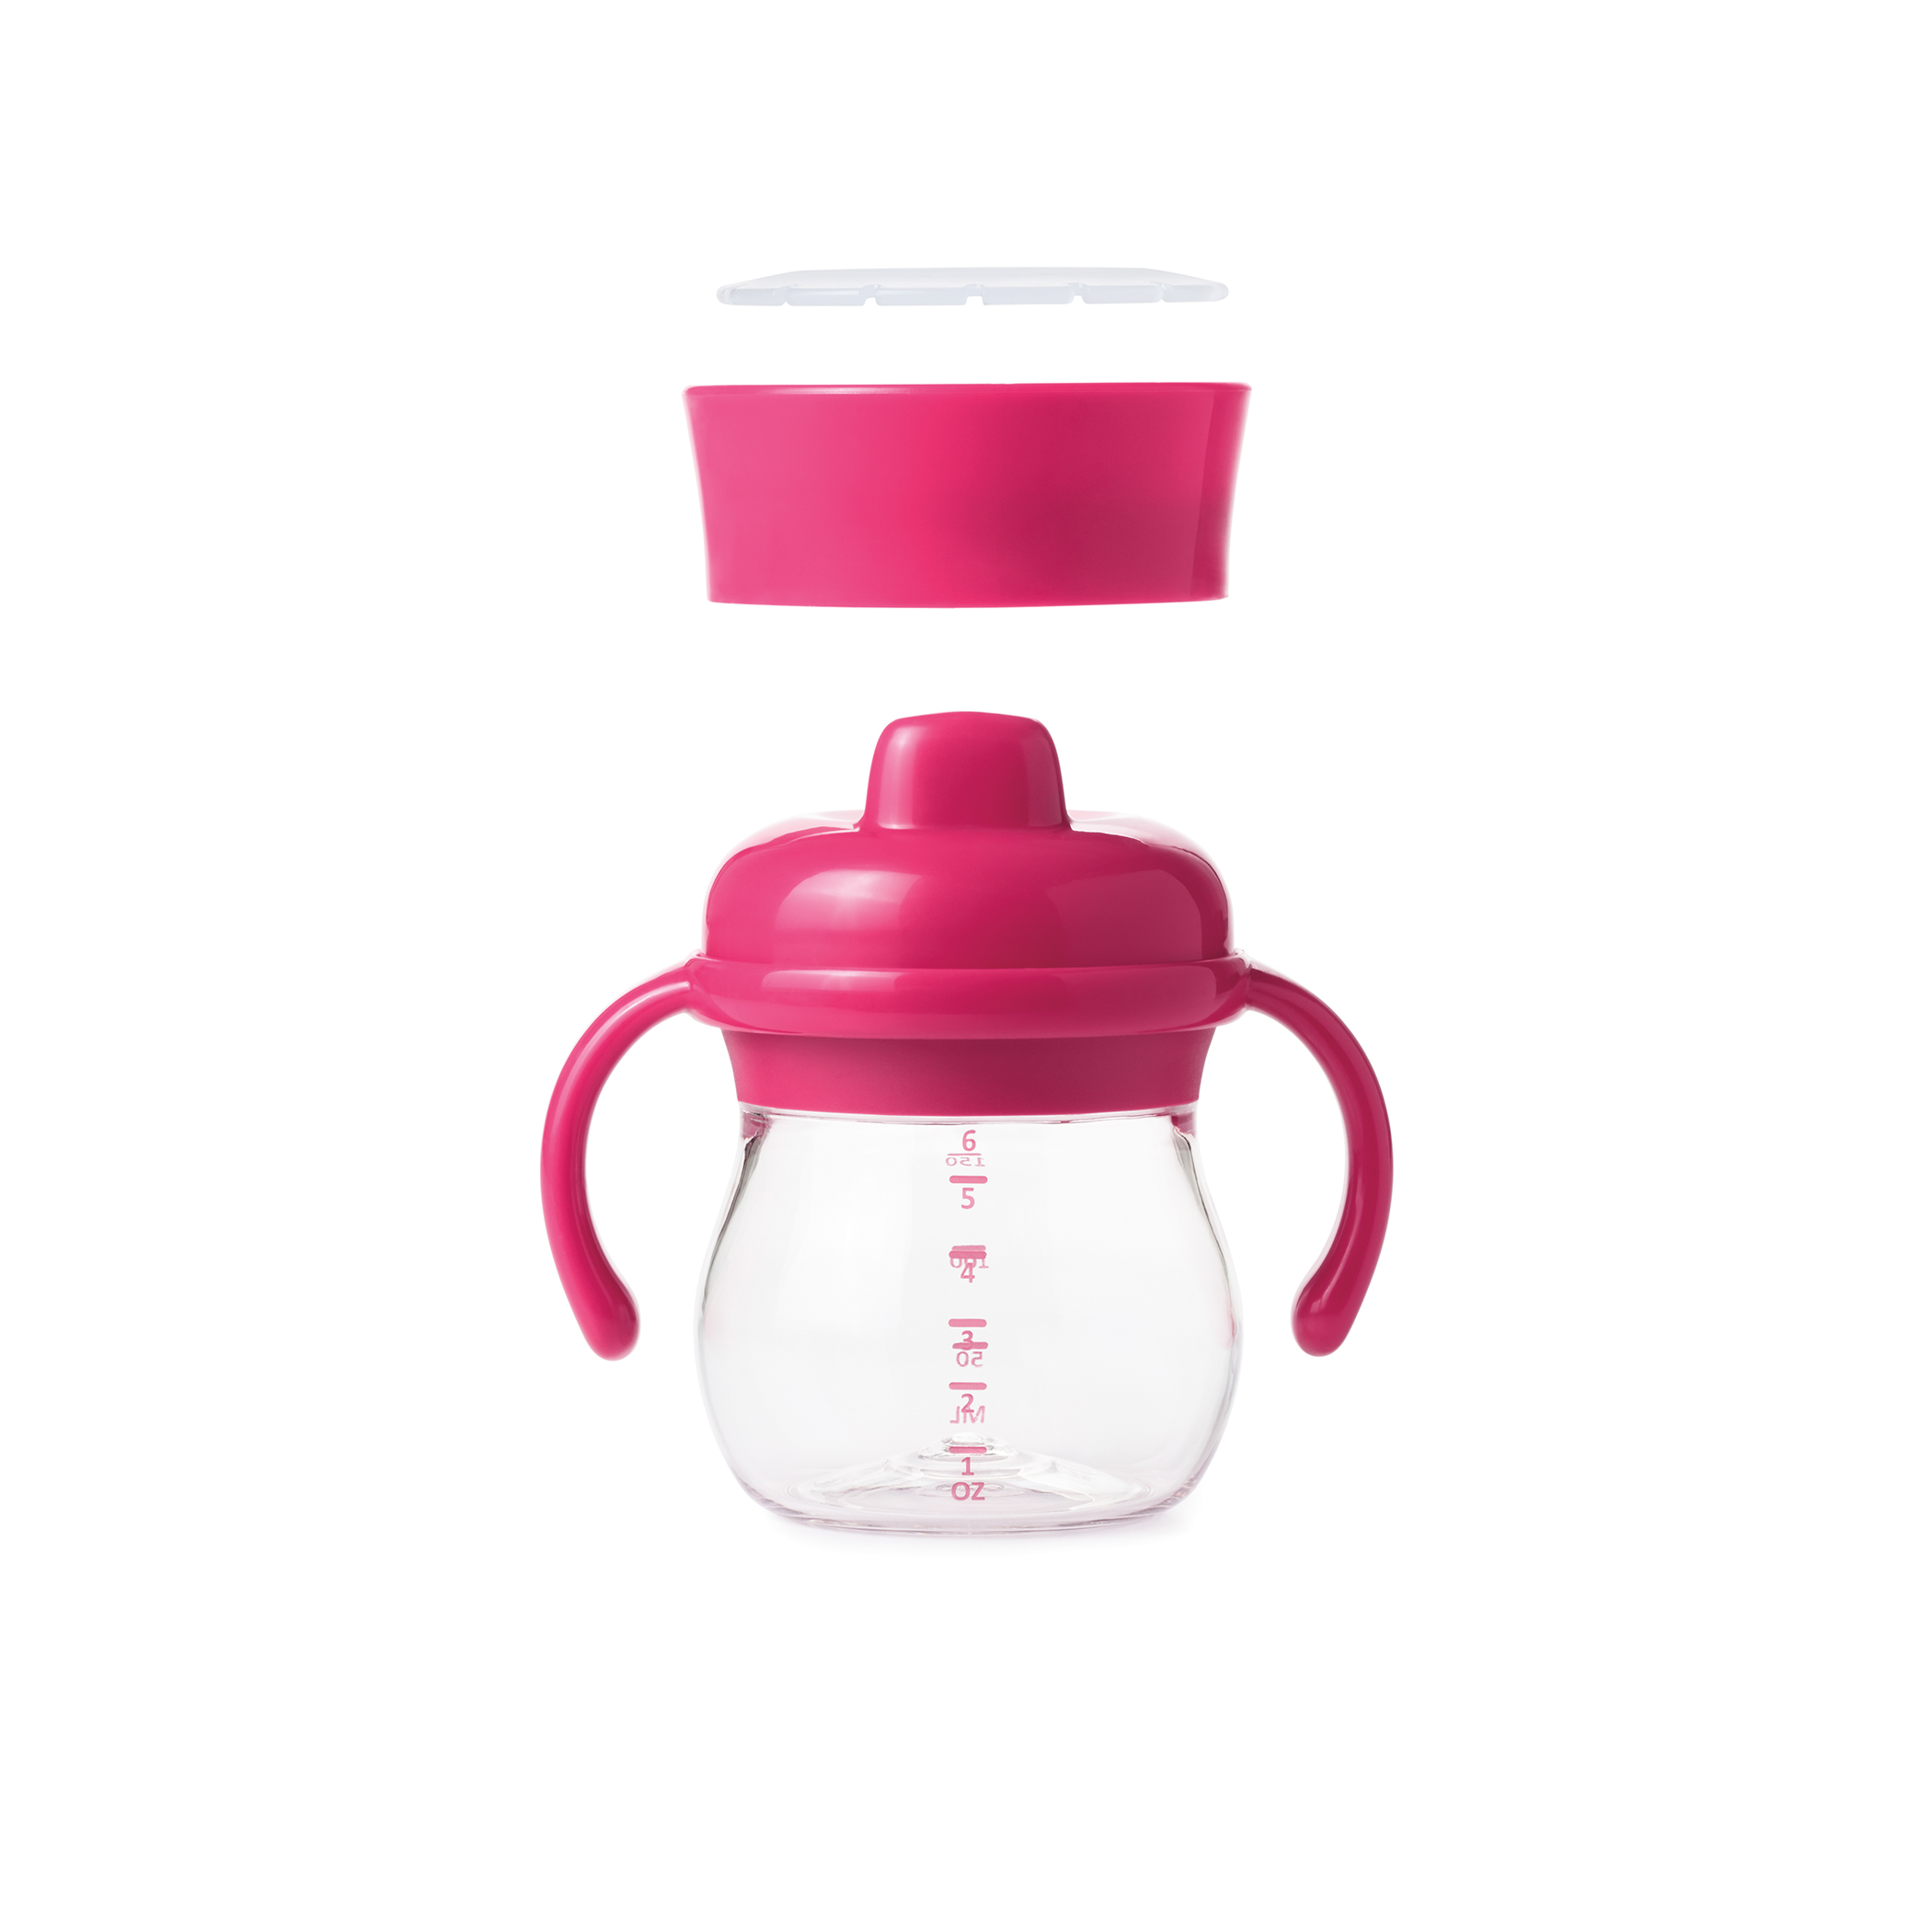 Help Little Ones Sip With The New Oxo Tot S Transitions